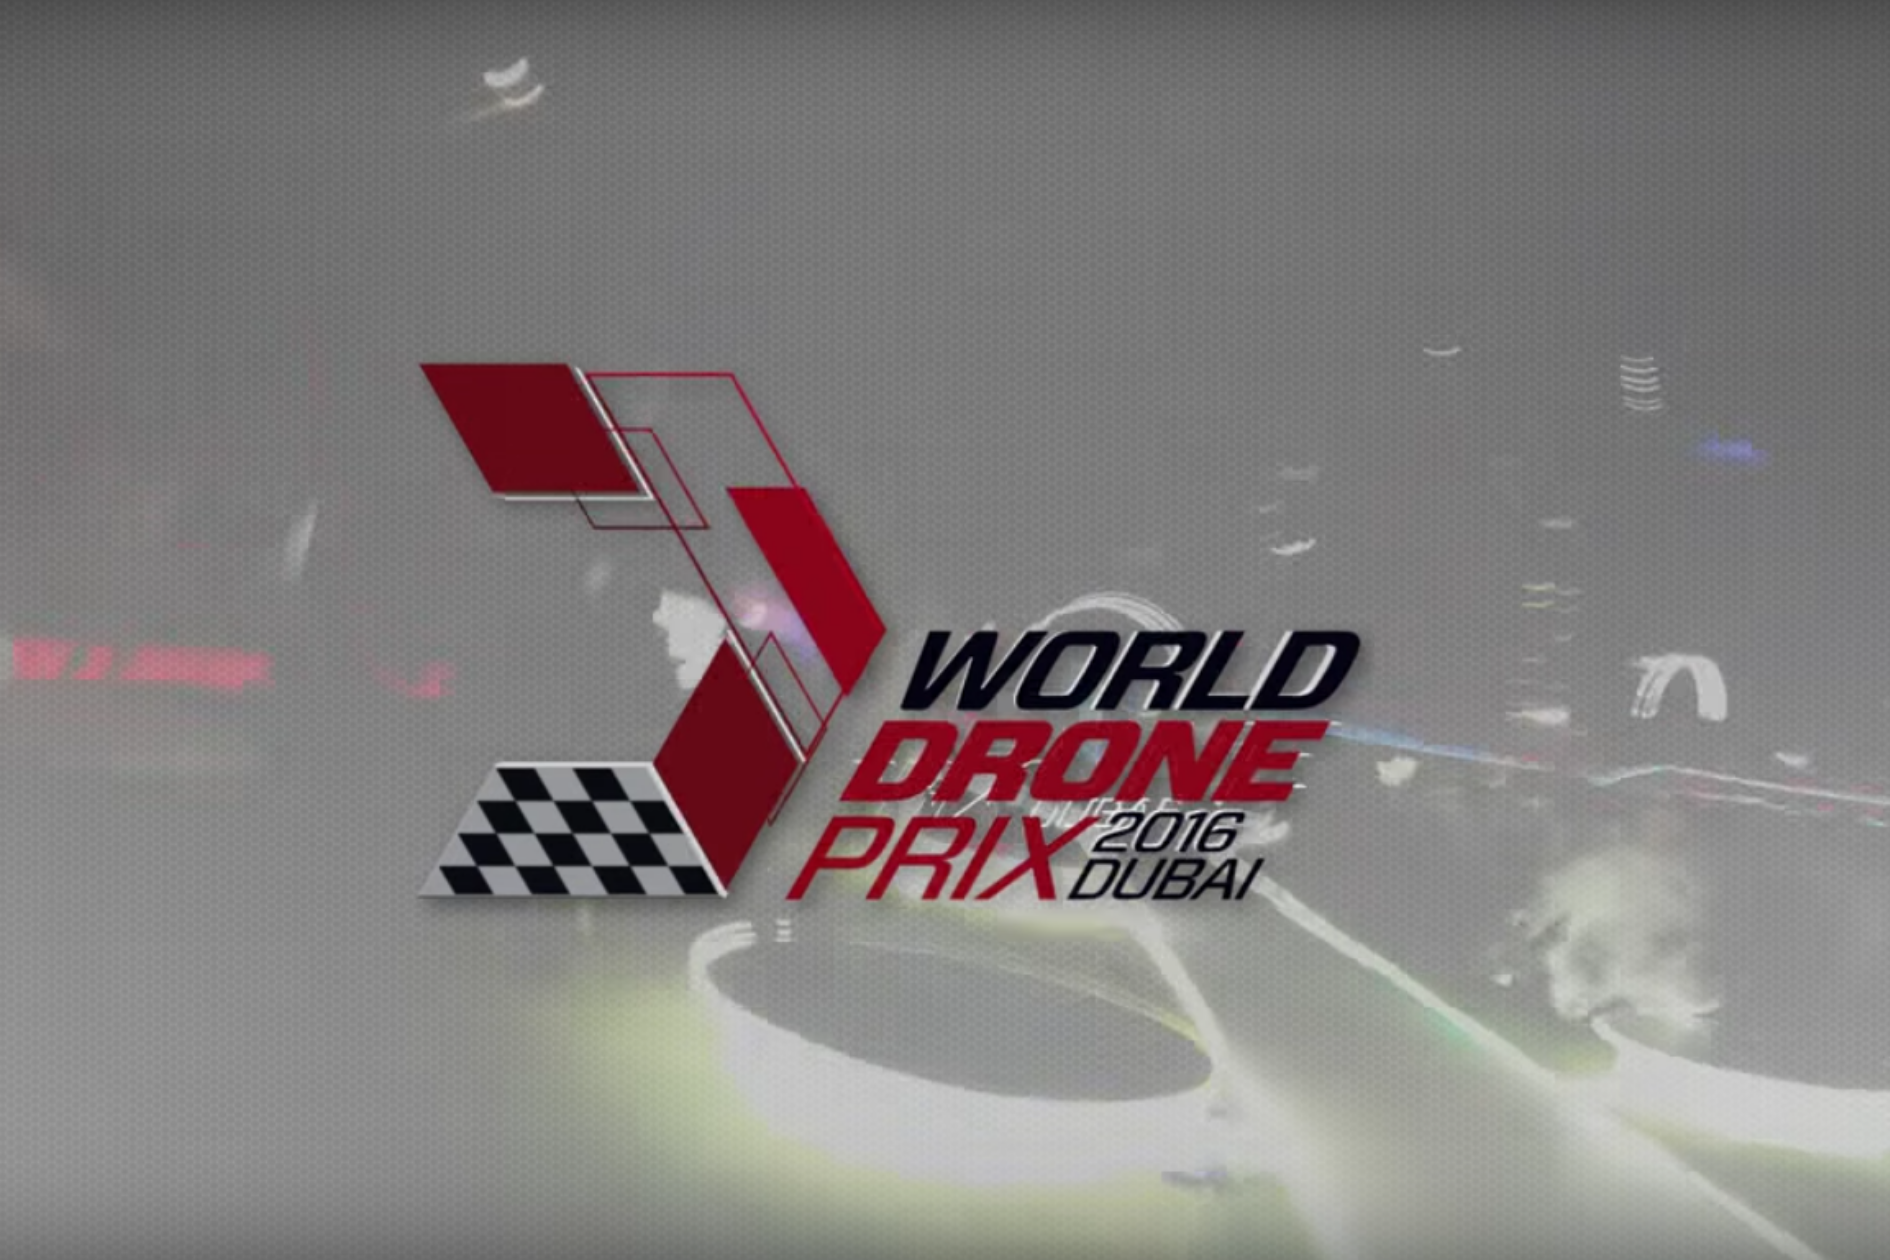 The Final Race of the biggest drone race, the World Drone Prix. #WDP16